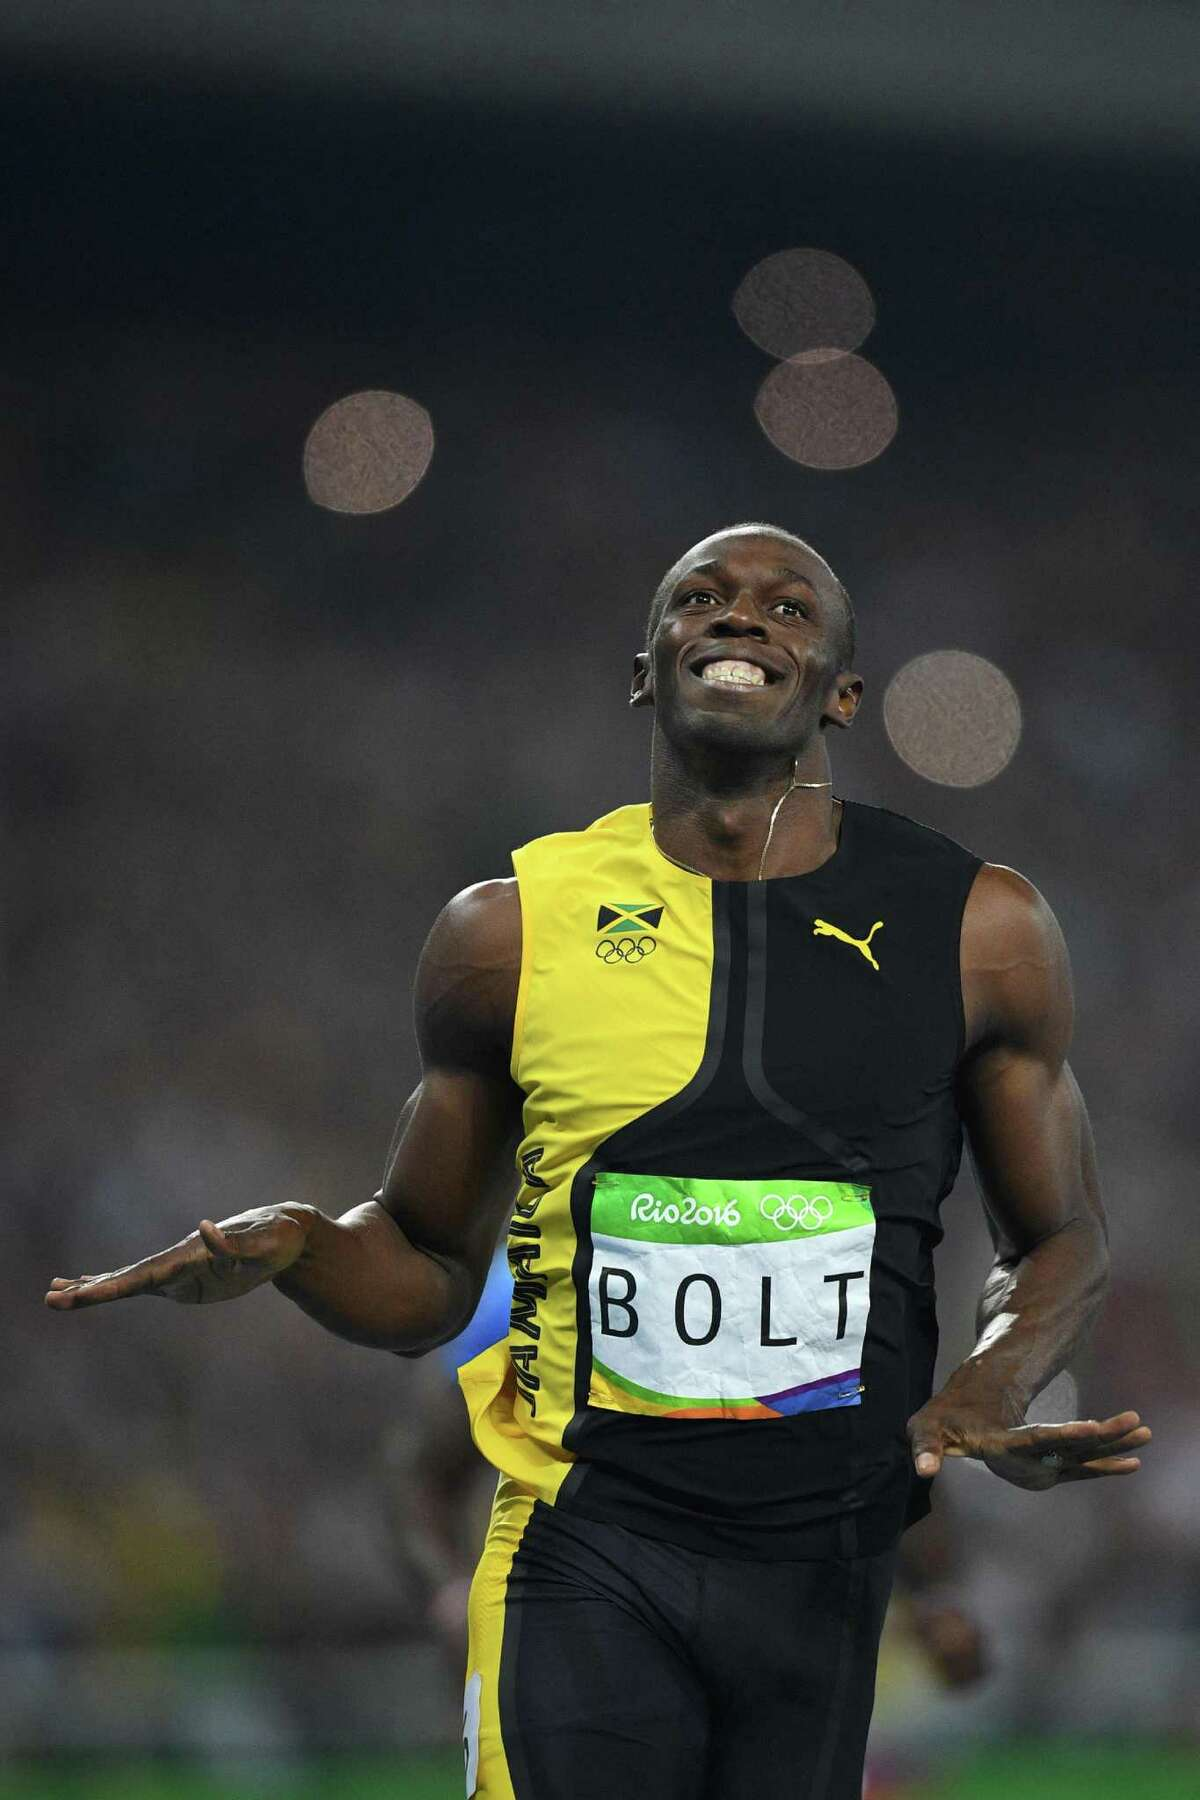 Jamaica's Usain Bolt celebrates after he won the Men's 100m Final during the athletics event at the Rio 2016 Olympic Games at the Olympic Stadium in Rio de Janeiro on August 14, 2016. / AFP PHOTO / Johannes EISELEJOHANNES EISELE/AFP/Getty Images